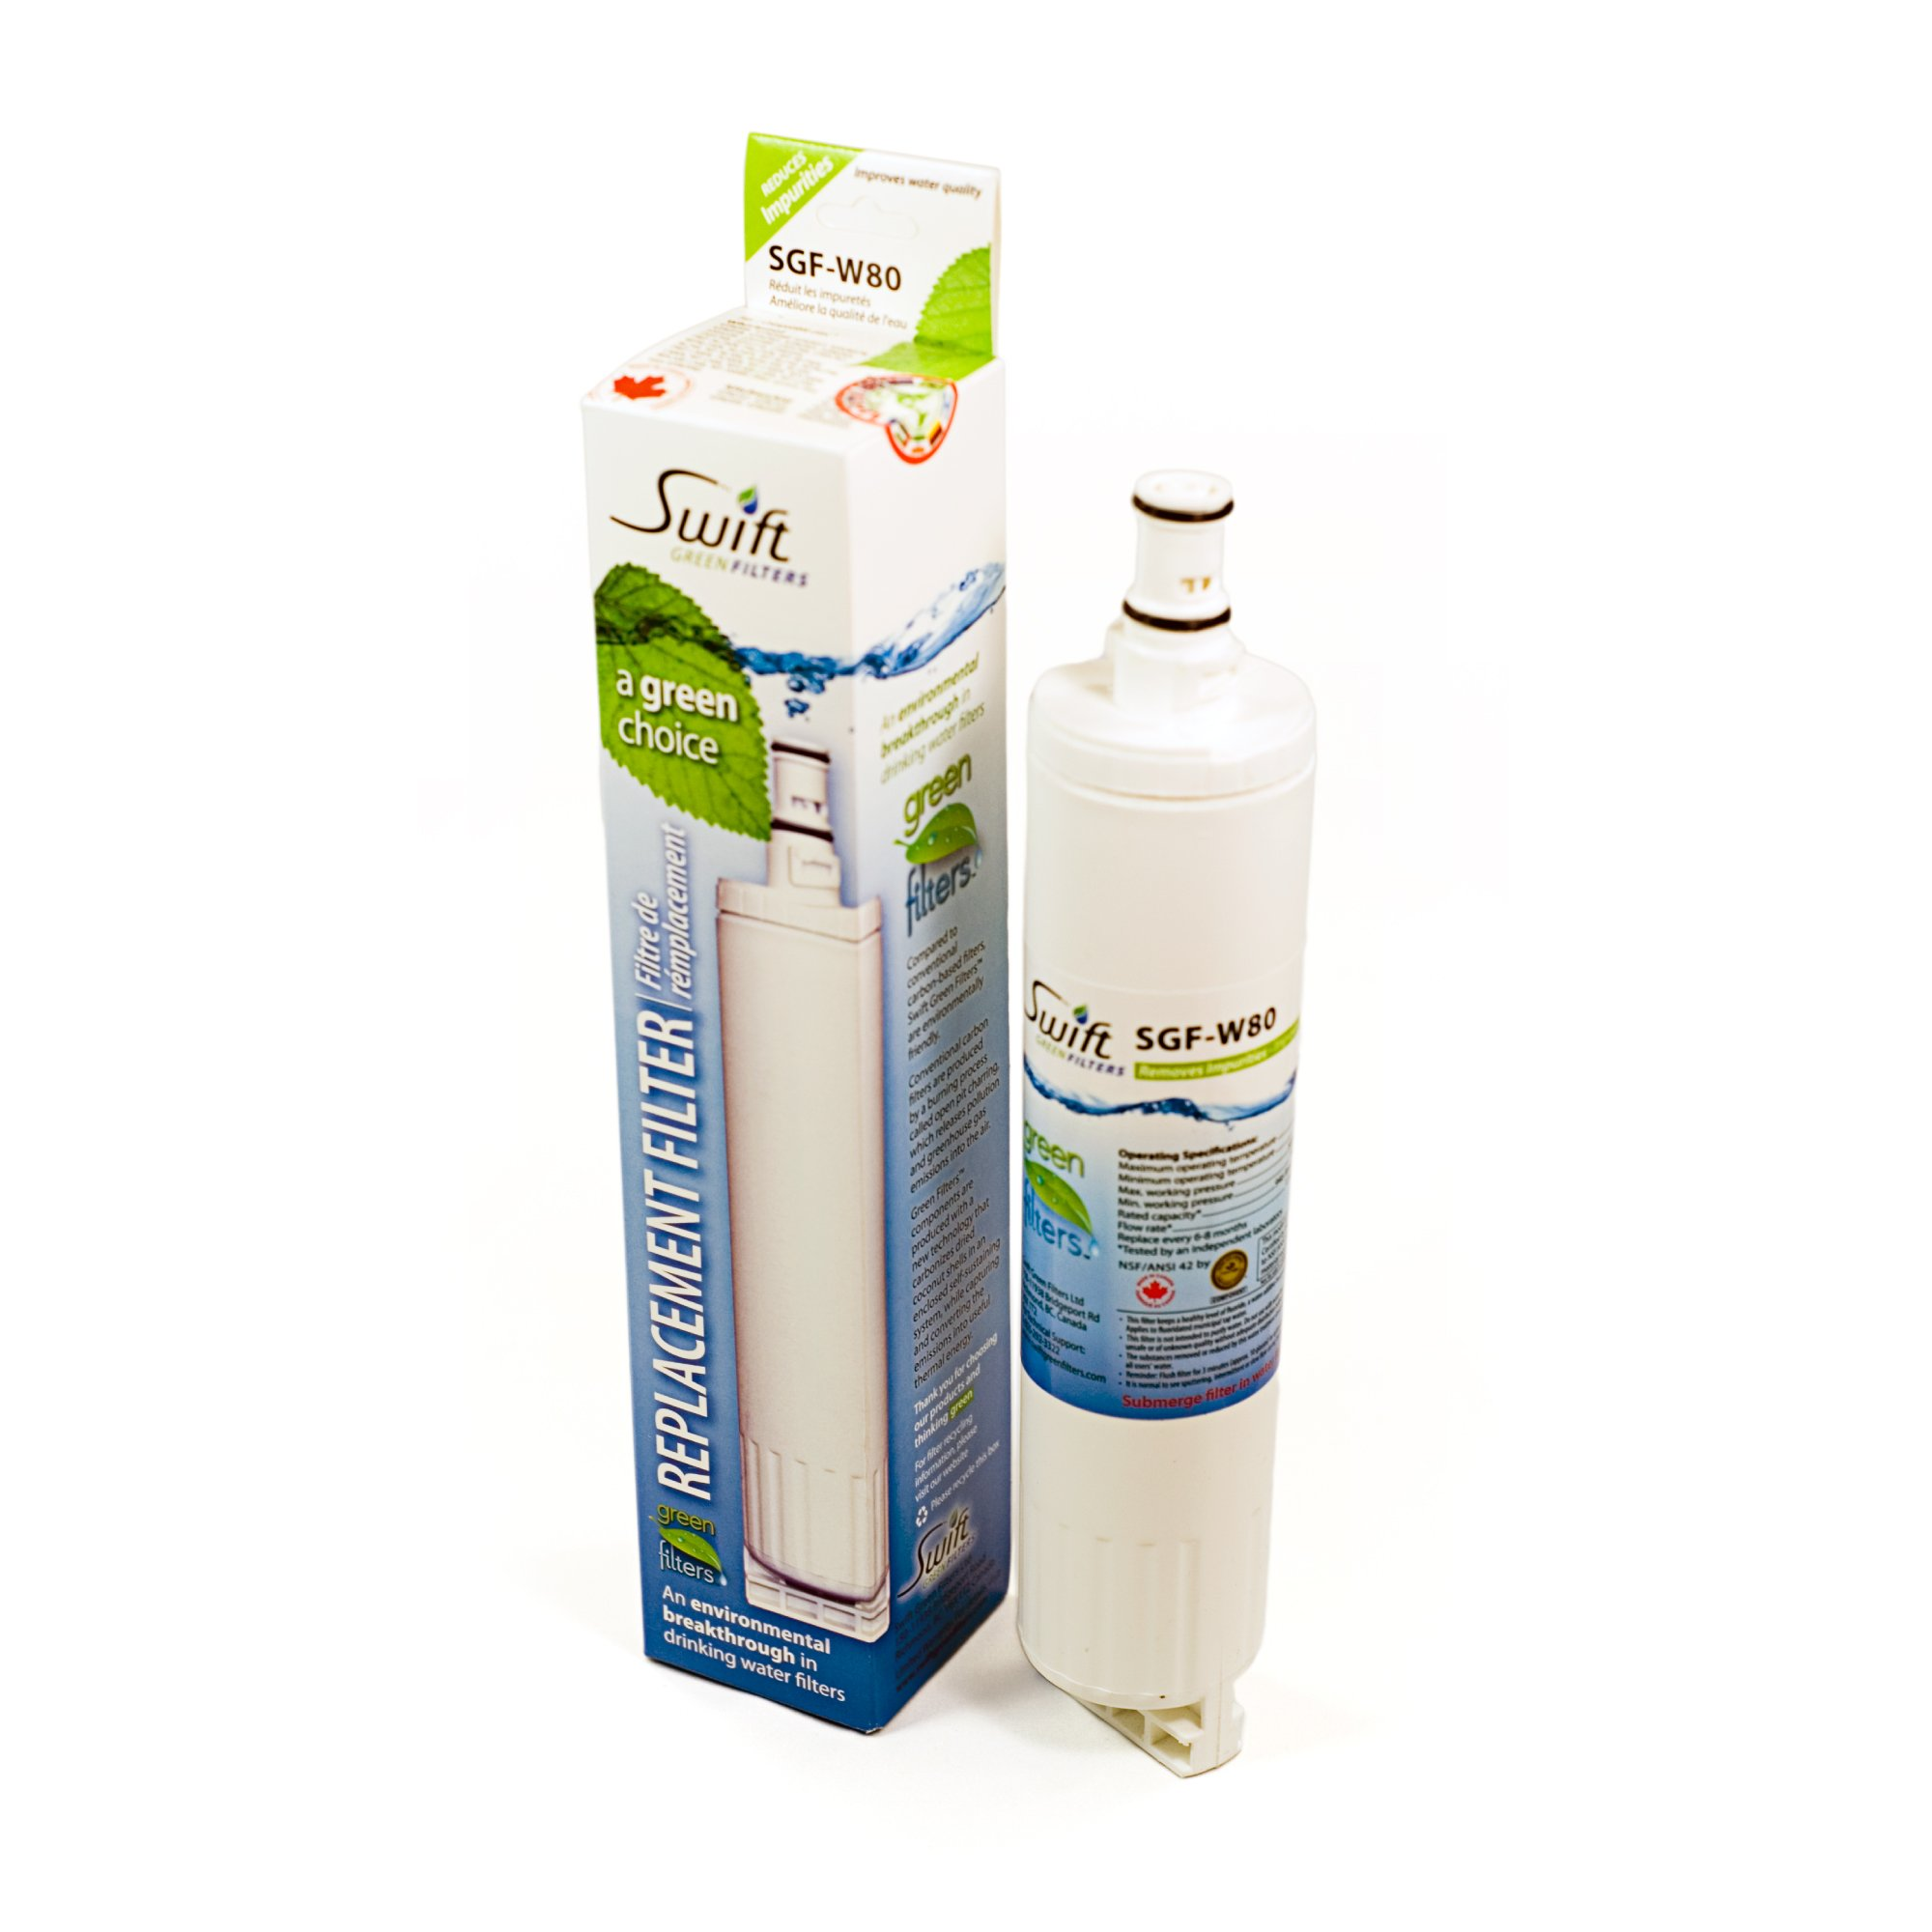 Whirlpool replacement water filter 4396508, WFNL300, NL240, WFL400V, WFL500, WF-300BR, PUR 4396547 100% recyclable, and made in U.S.A. and Canada W80, Pack of 2